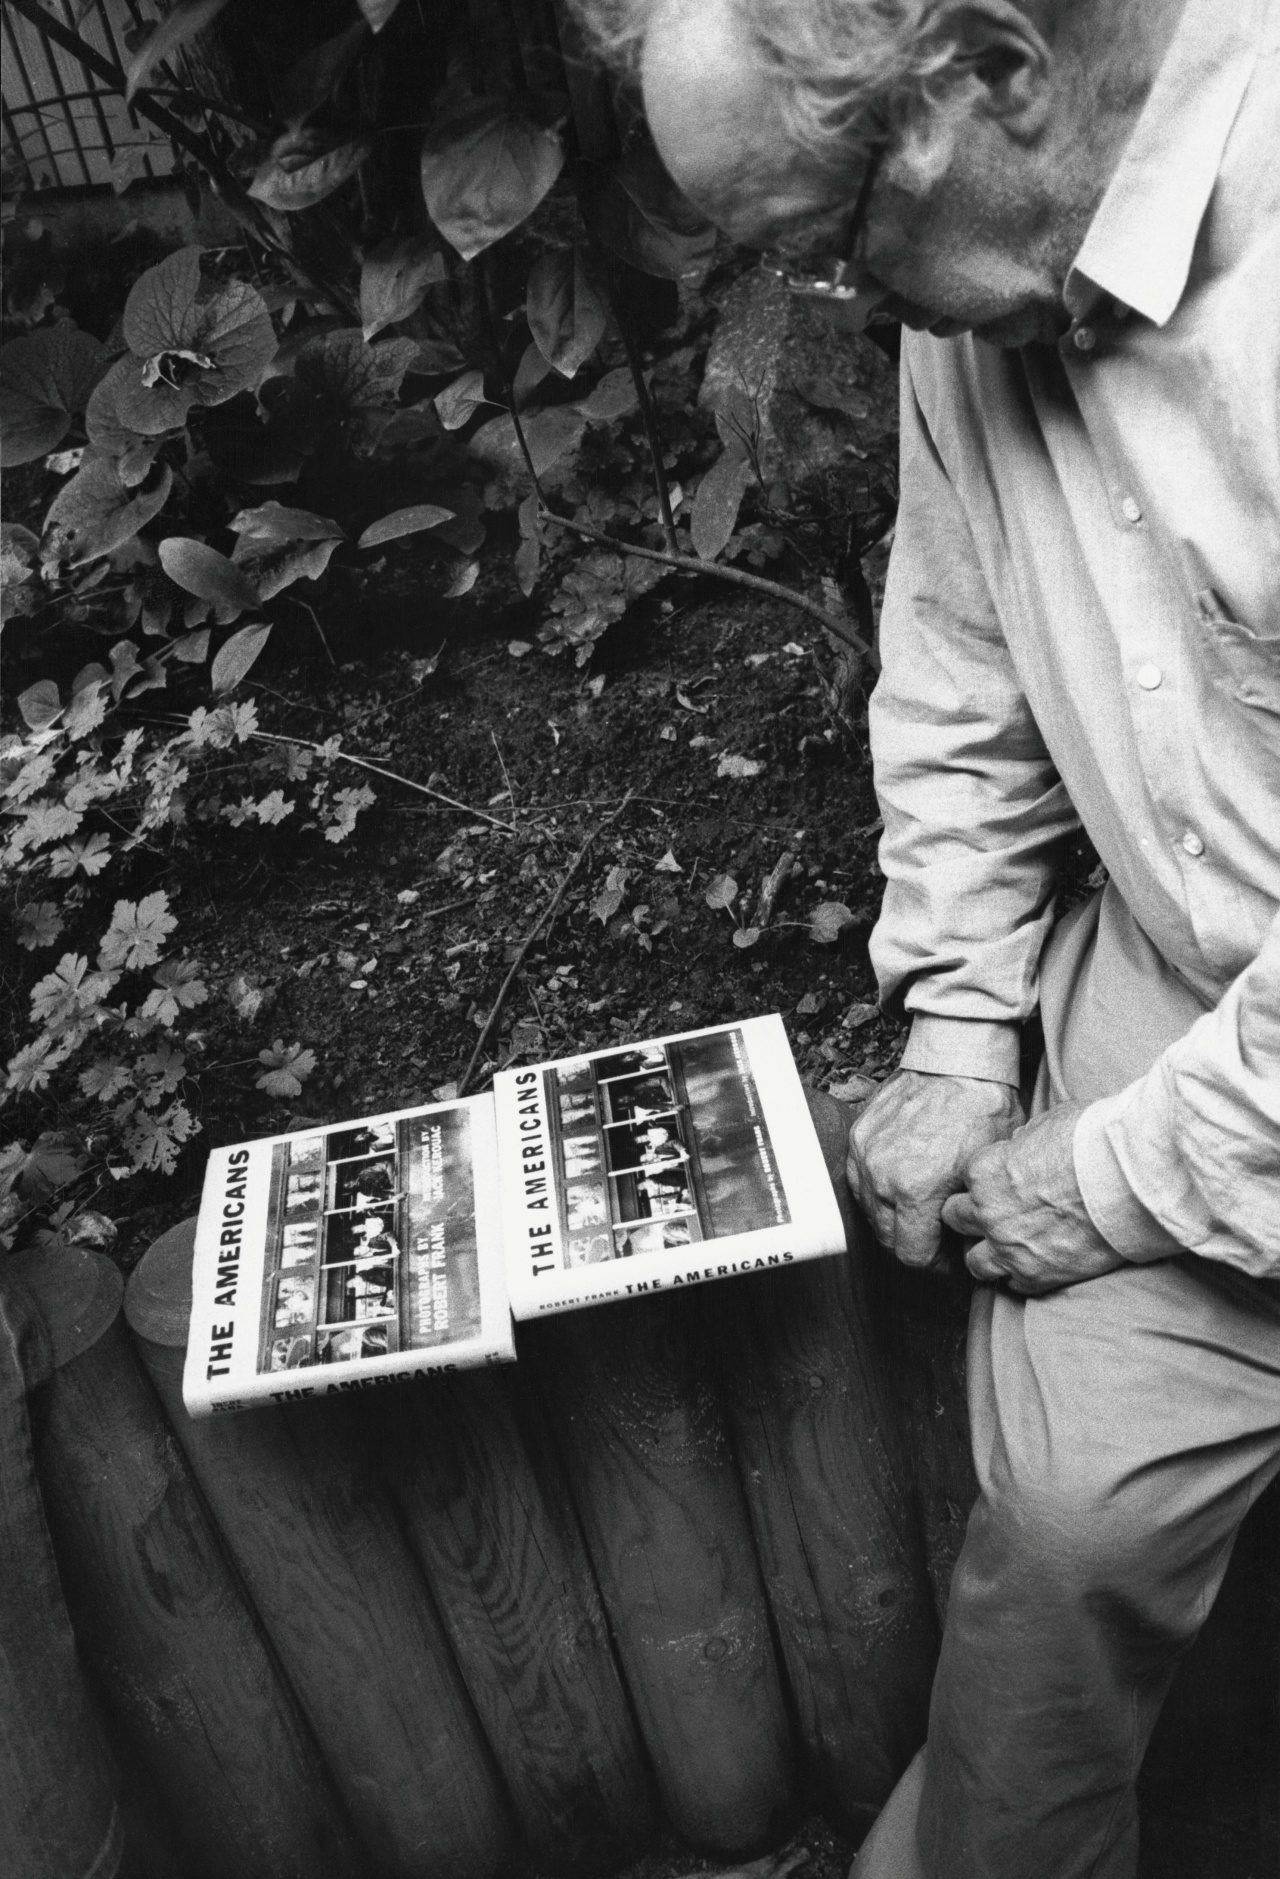 Robert Frank checking the cover of the Steidl editon of The Americans in Göttingen, 2007ⓒ Gerhard Steidl